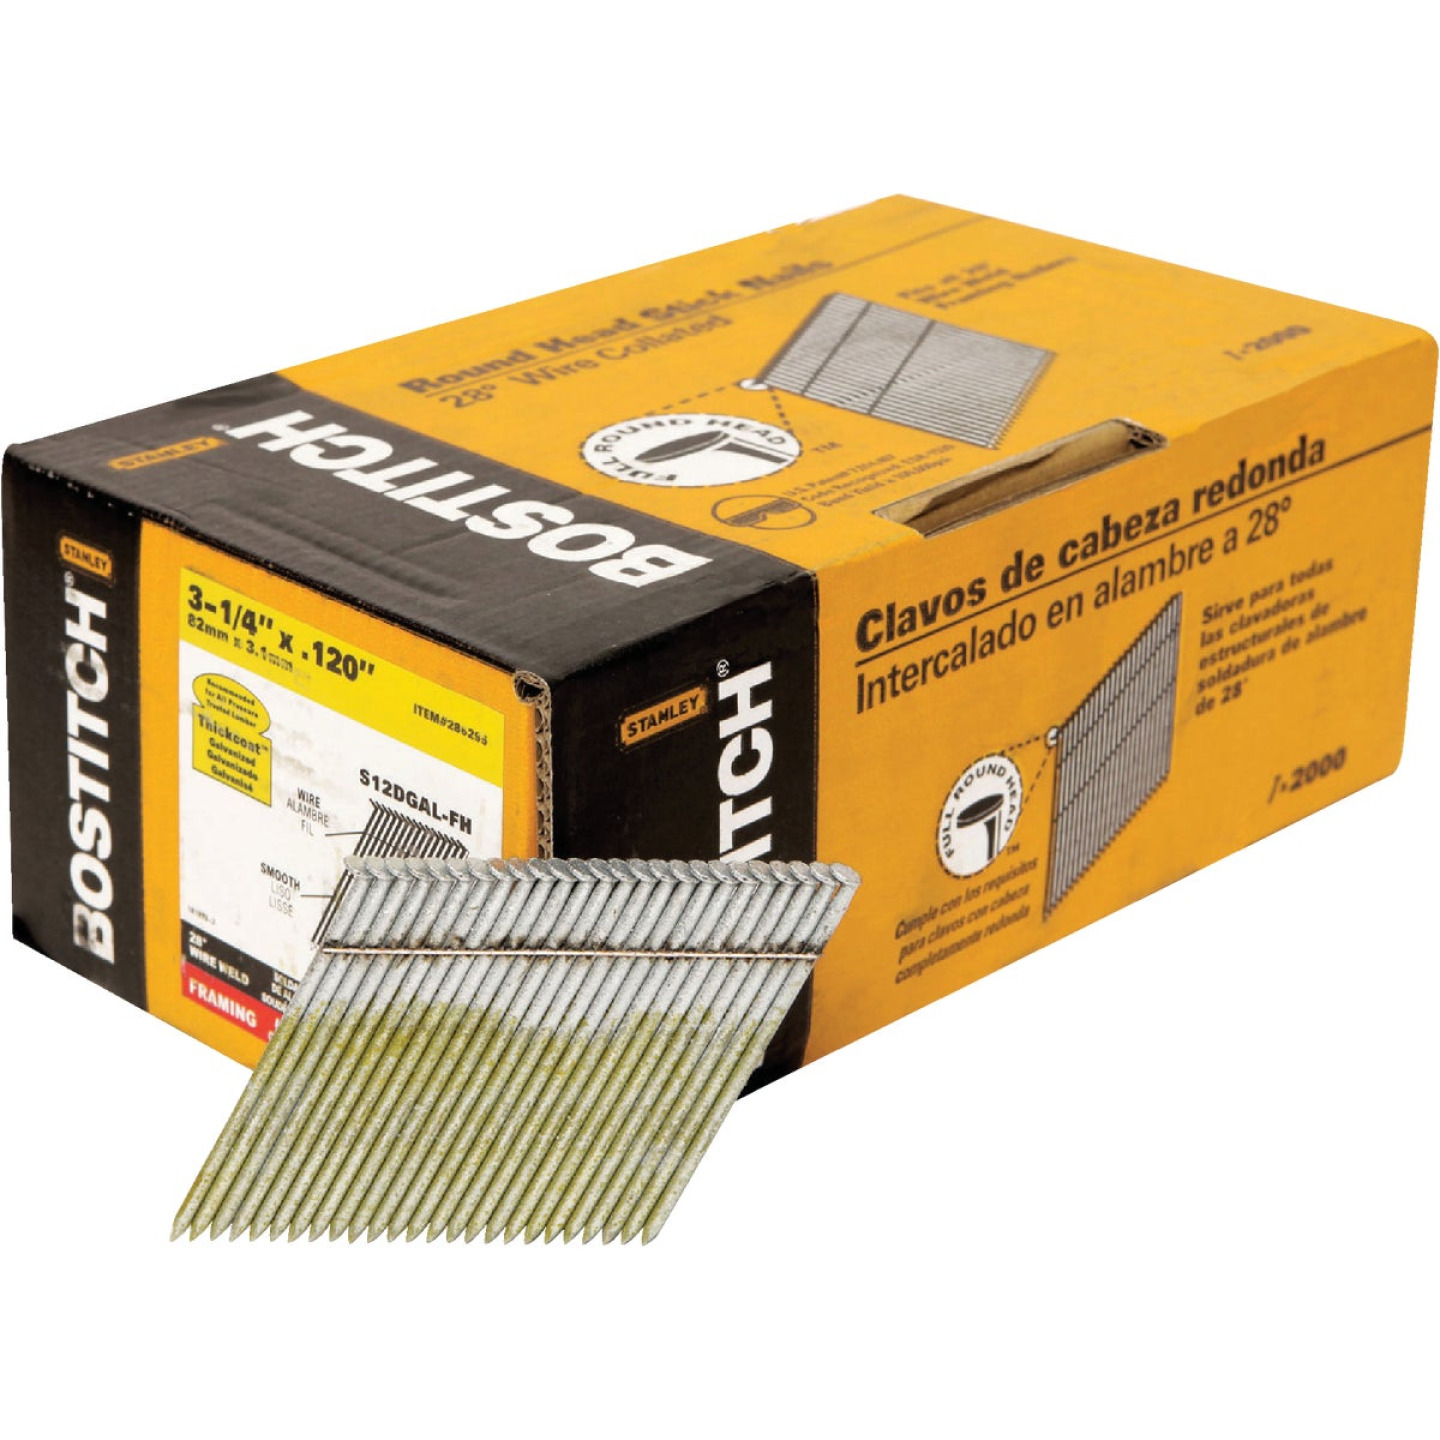 Bostitch 28 Degree Wire Weld Galvanized Offset Round Head Framing Stick Nail, 3-1/4 In. x .120 In. (2000 Ct.) Image 1